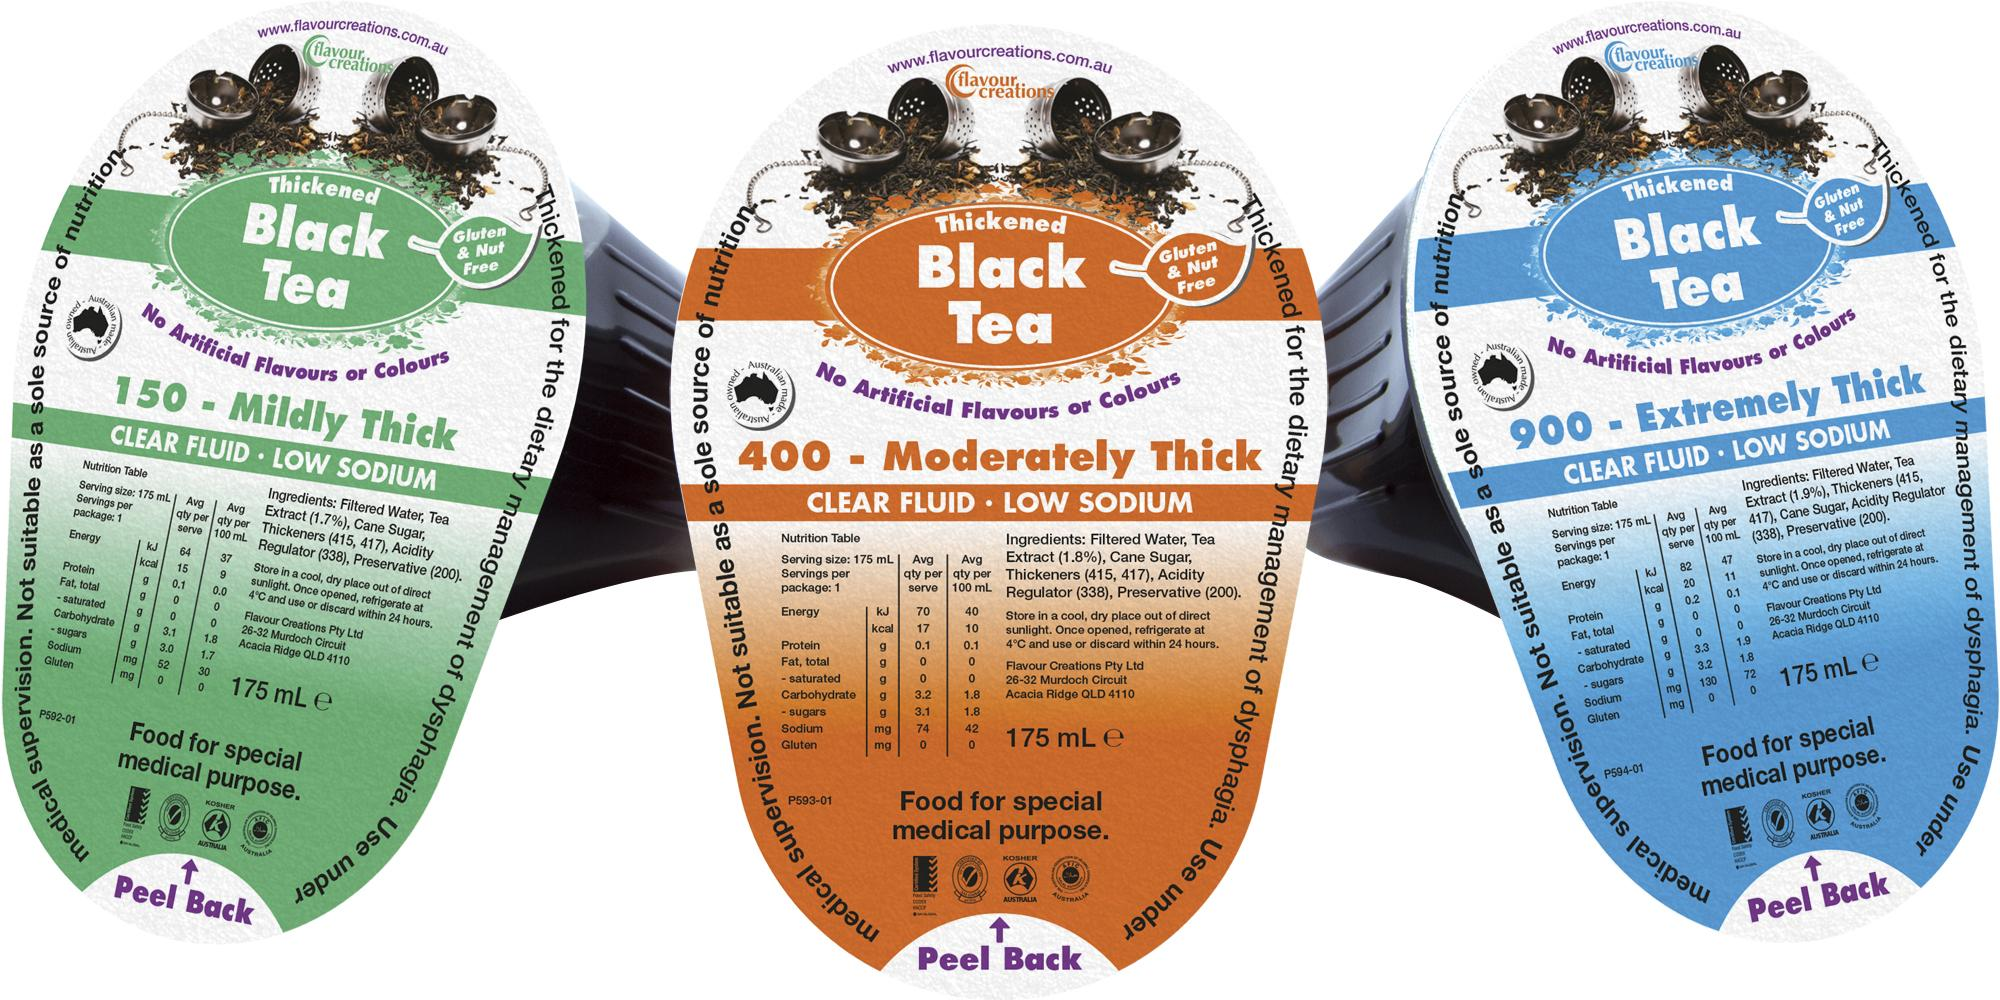 FLAVOUR CREATIONS BLACK TEA 175ML L1, Box 24